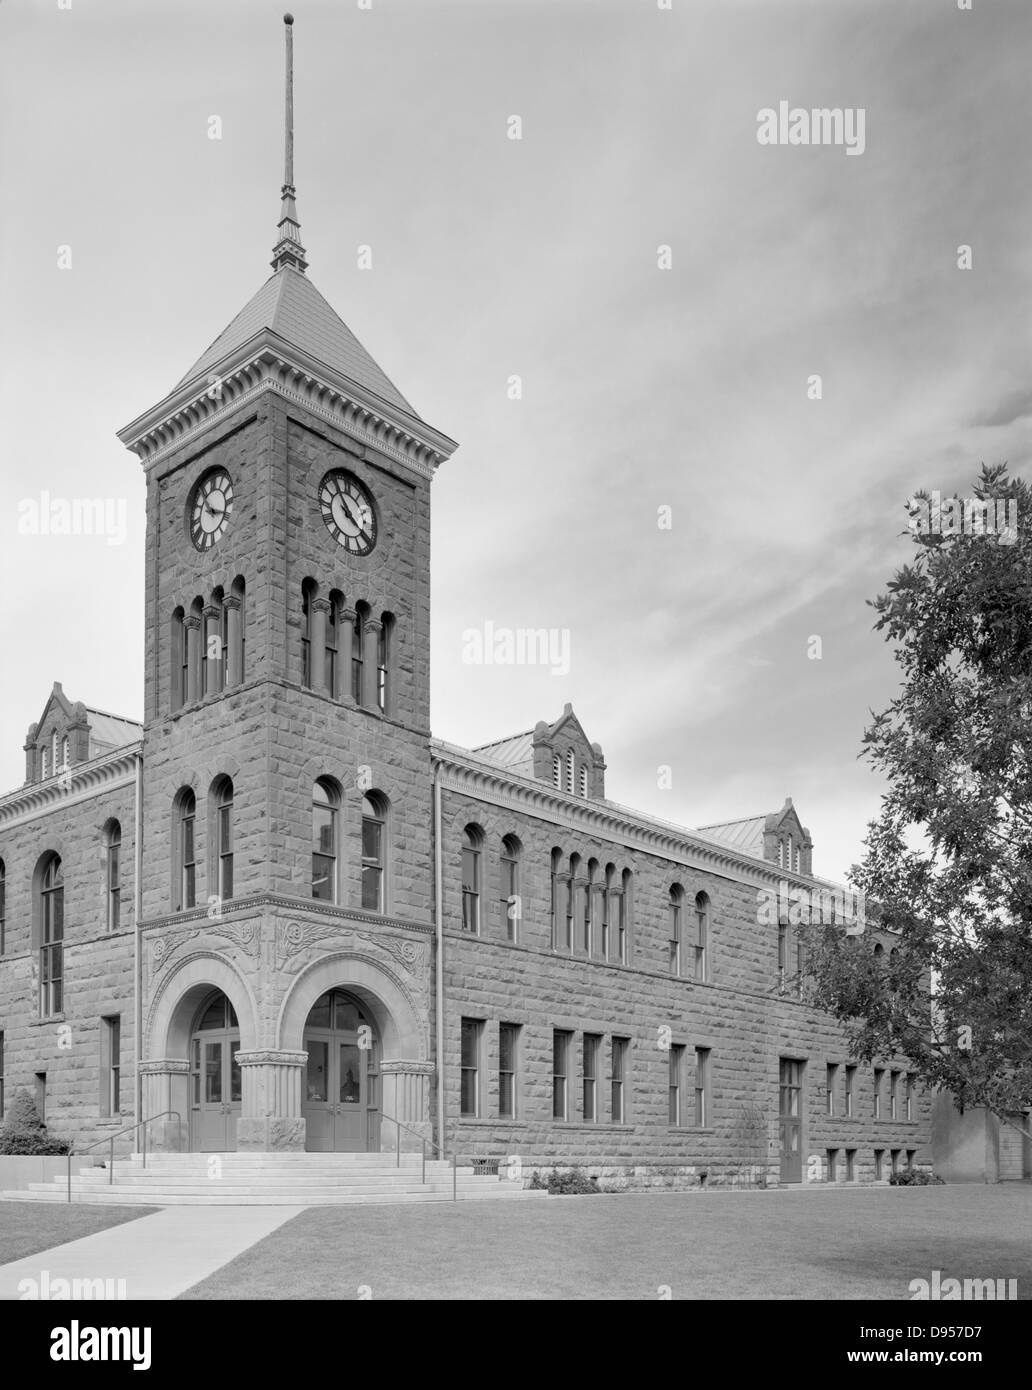 The Coconino County Courthouse in Flagstaff, Arizona. Designed by J.N. Preston, is a red stone Romanesque Revival - Stock Image